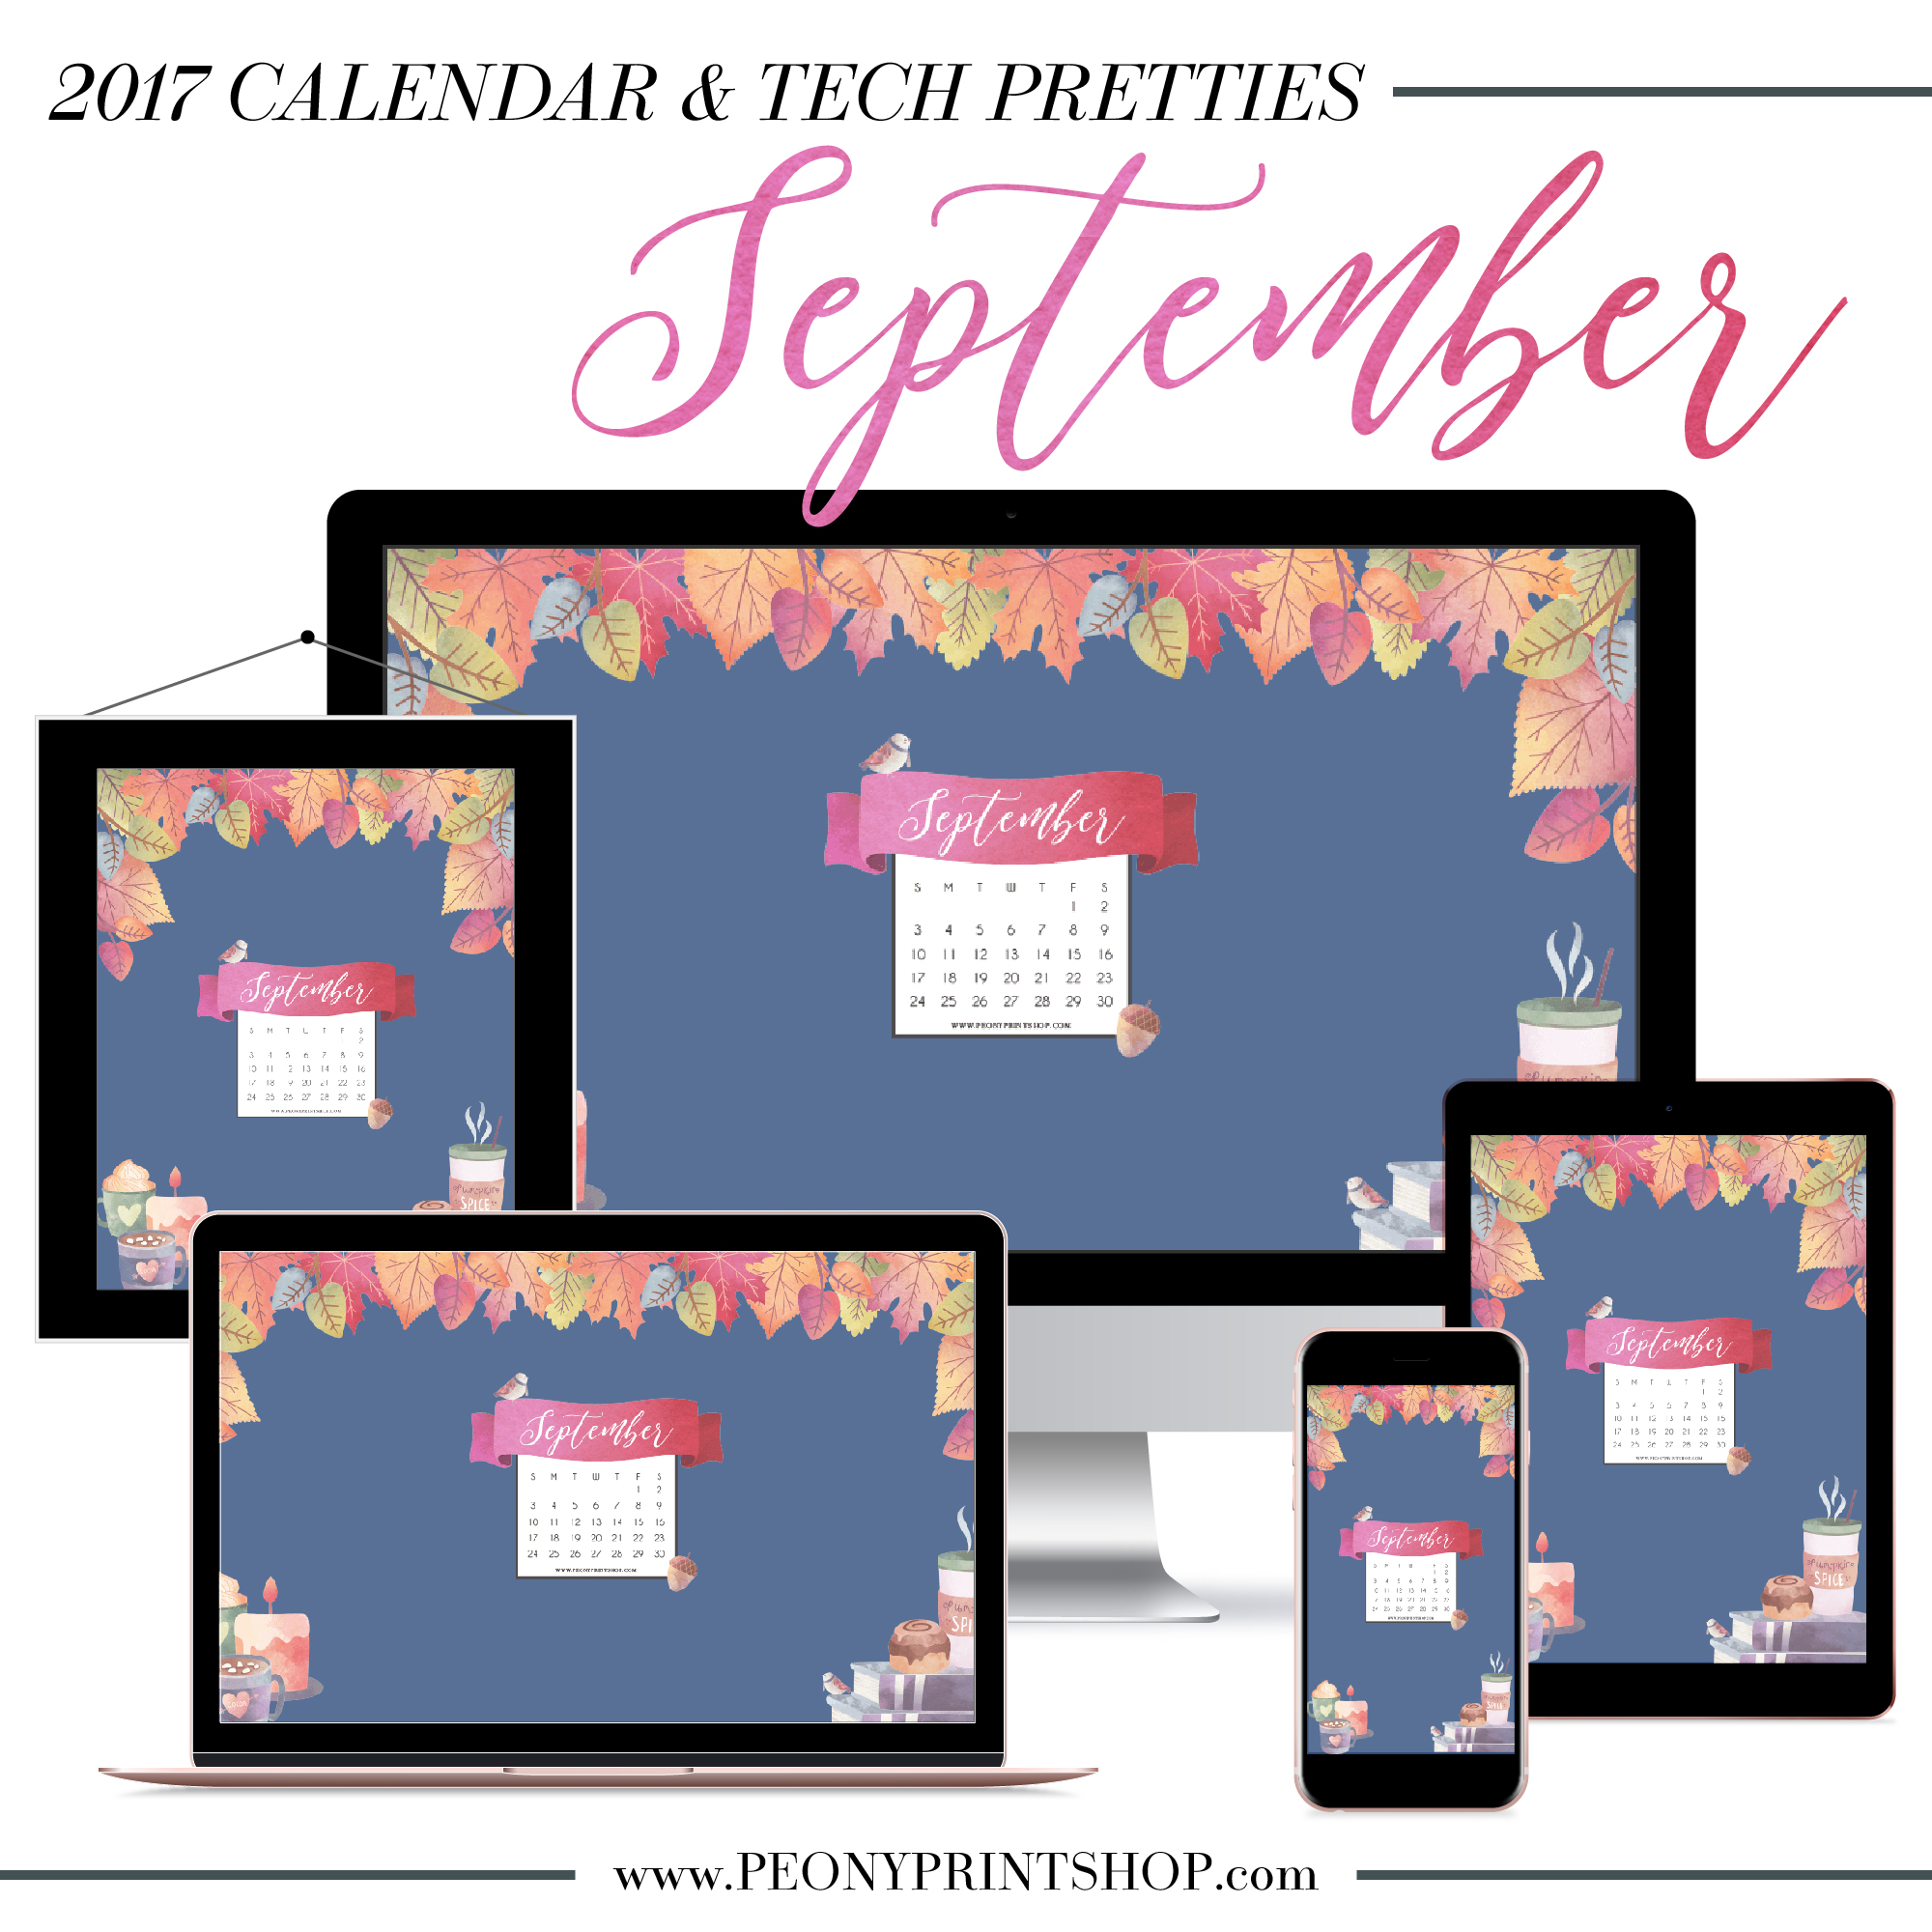 2017 September Tech Pretties + Printable Calendar  |  PeonyPrintshop.com